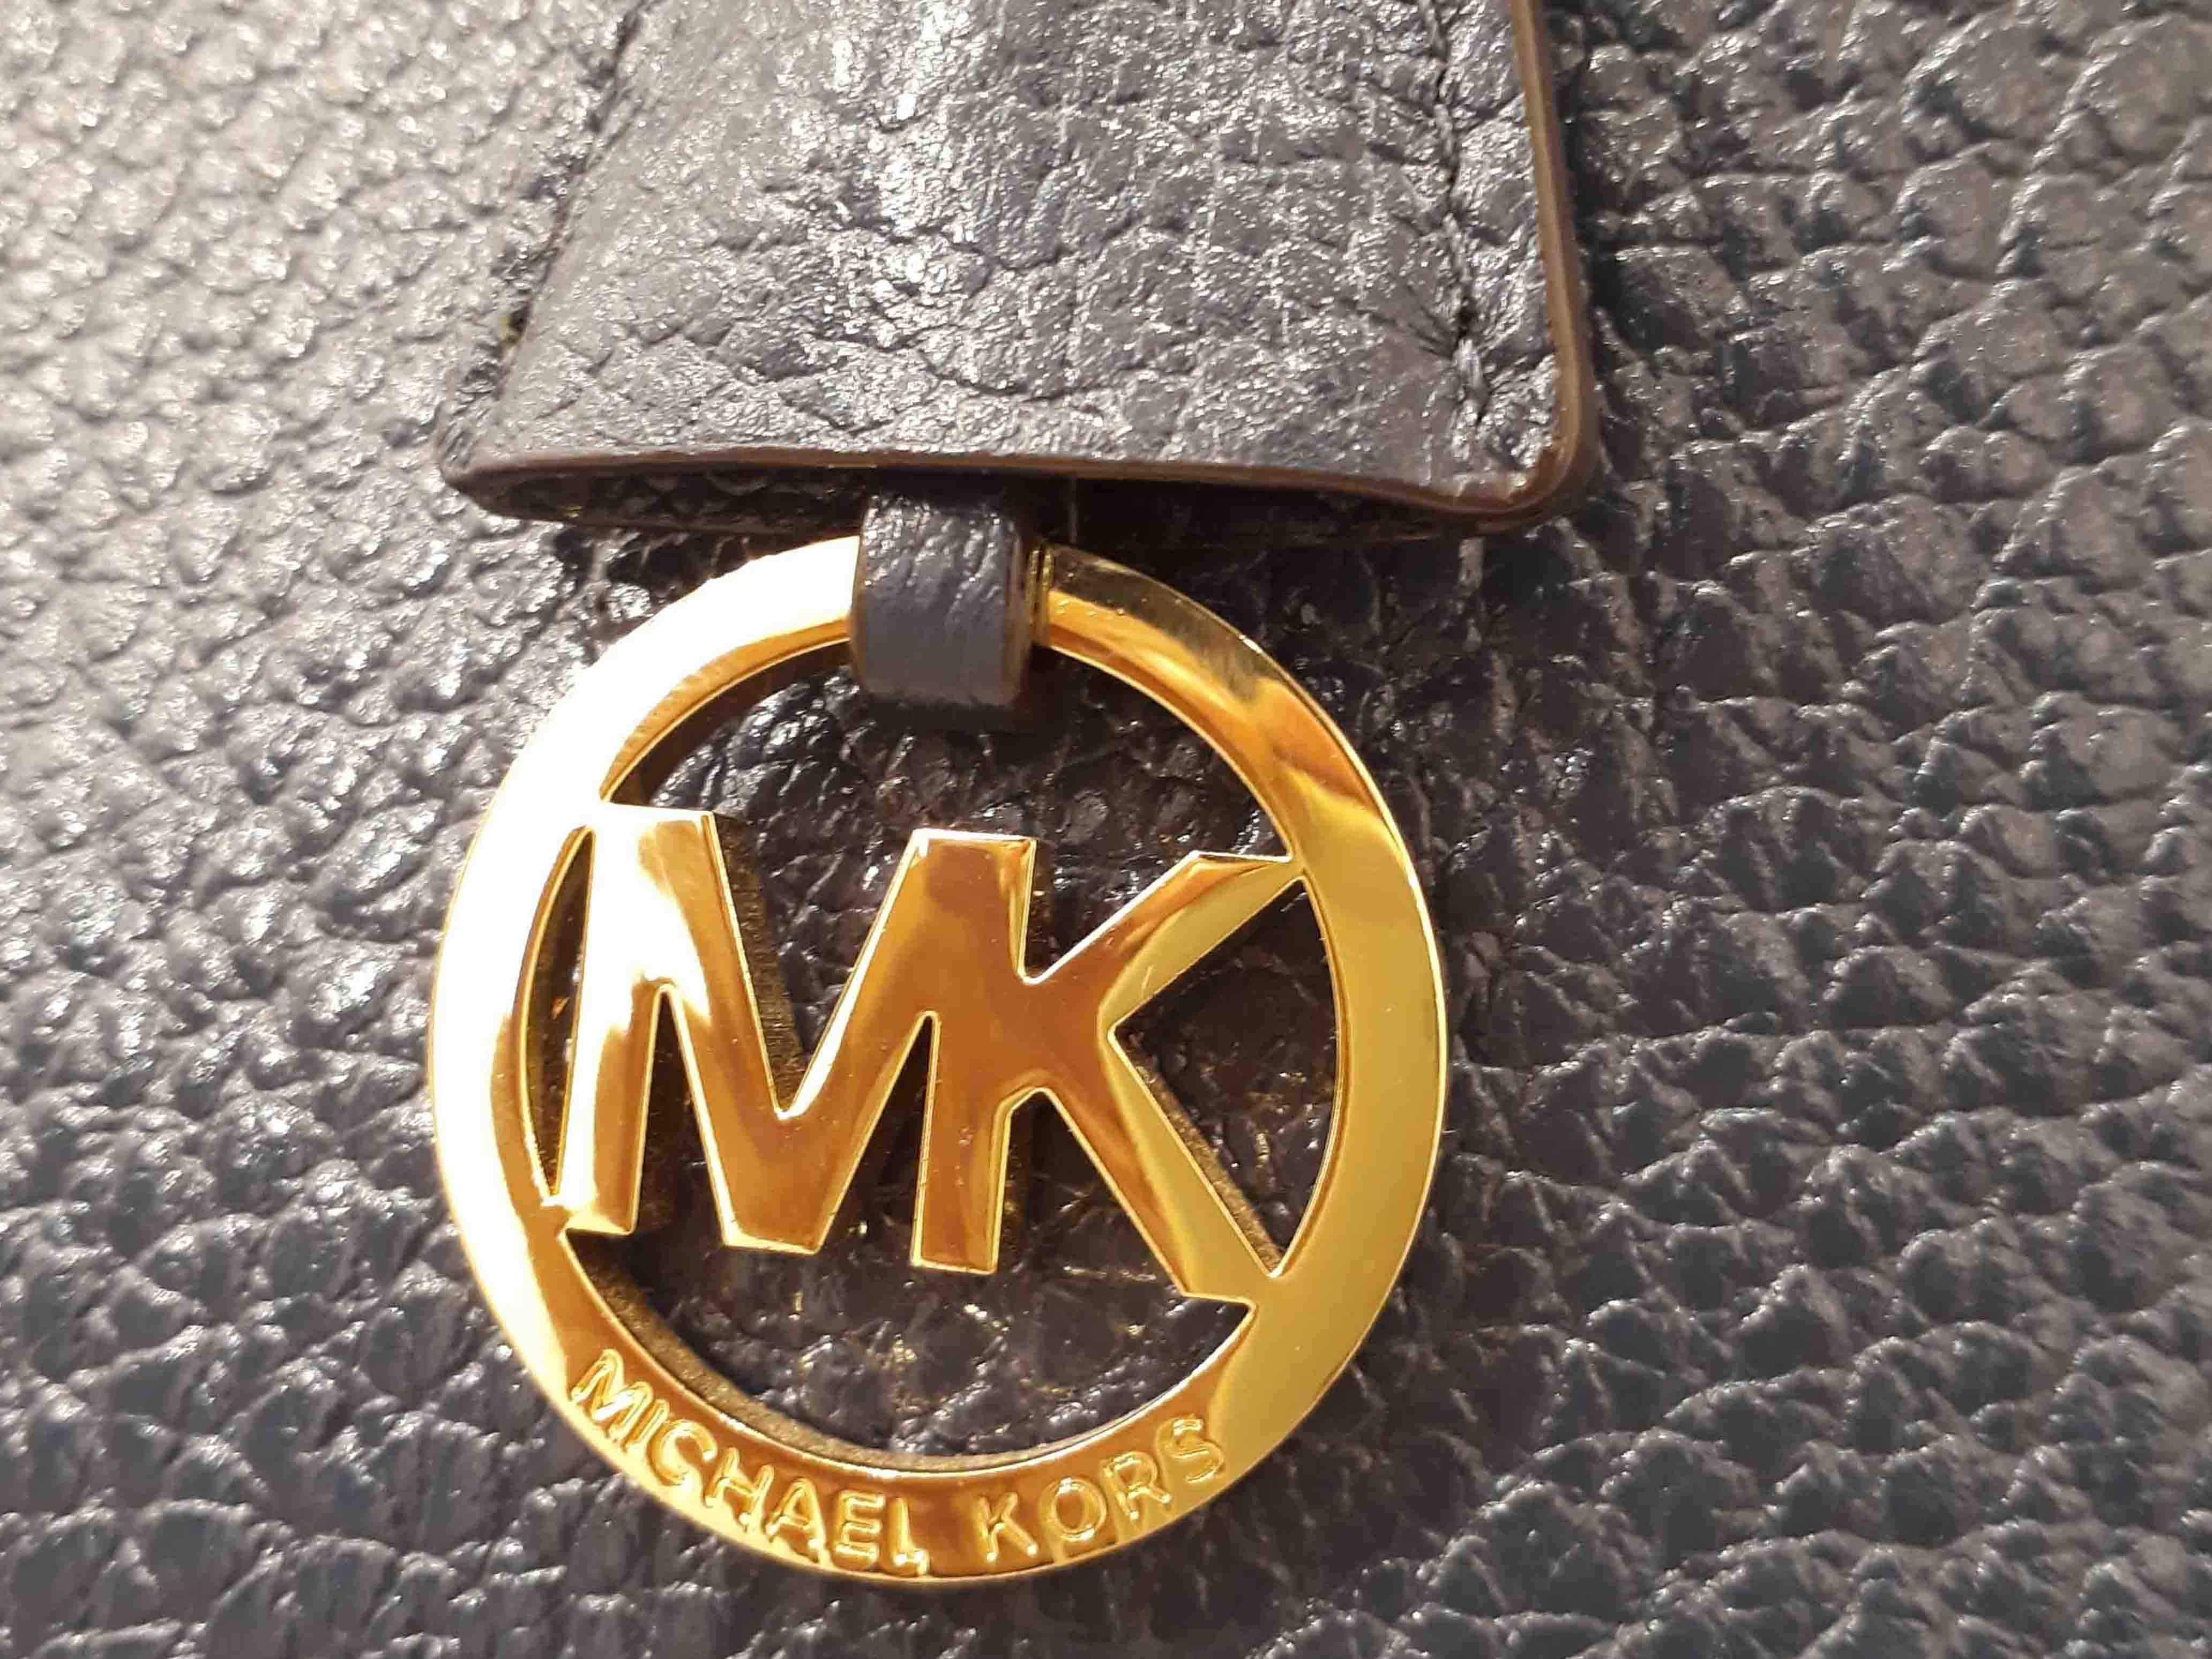 c5a66f7f9b2a64 The letters 'MK' are placed very close to each other. The hanging charm is  suspended at the end of a matching leather strap or chain and appears solo  ...